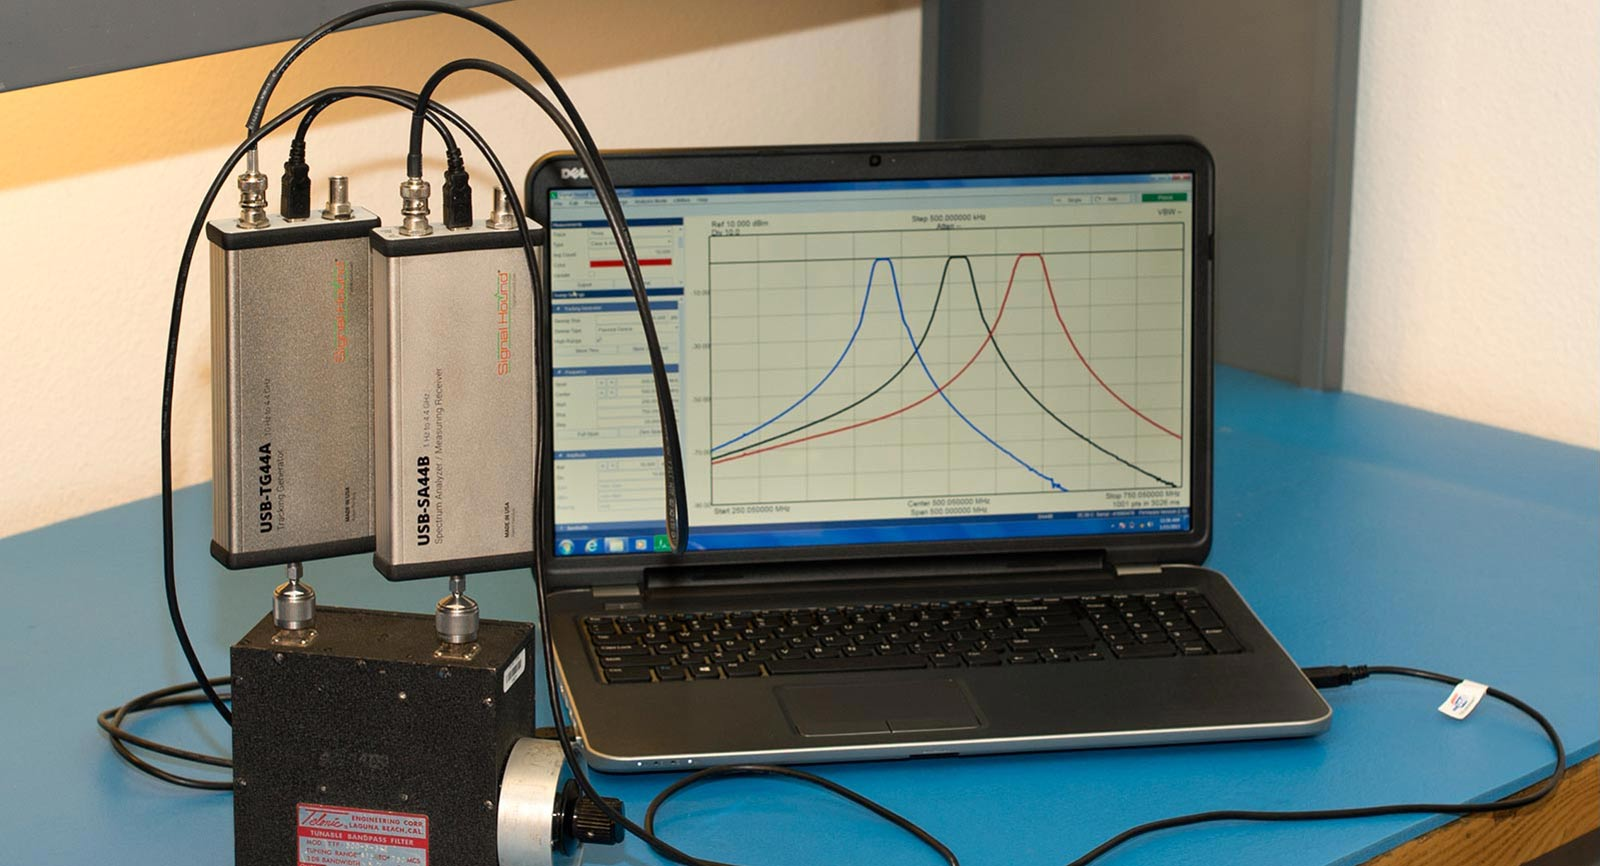 spike spectrum analyzer software for a sna setup